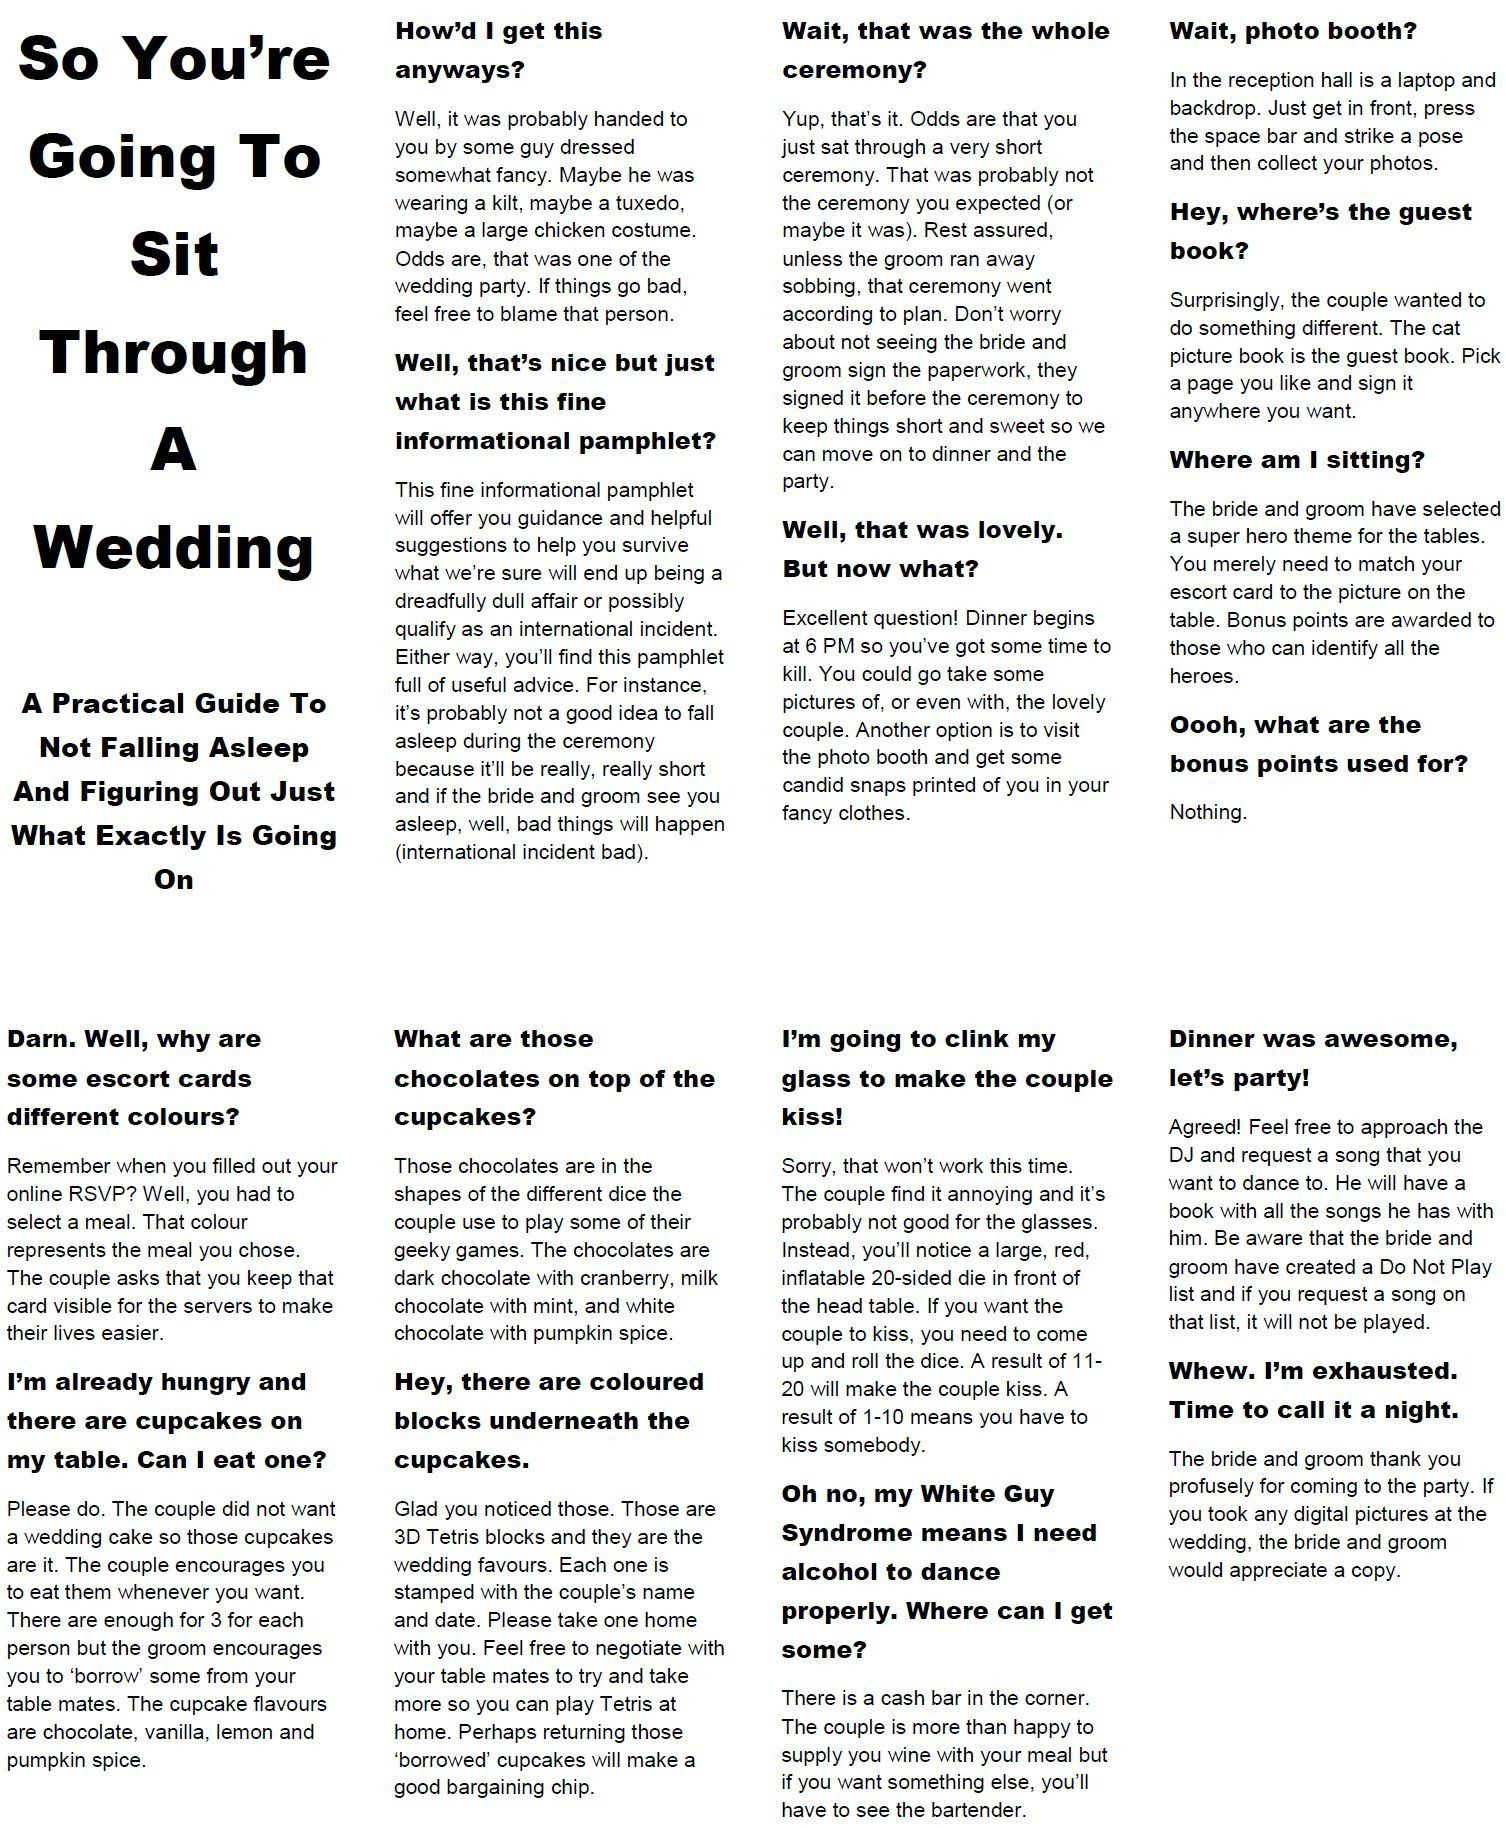 Wedding Program Wording Sample So You Re Going To Sit Through A Wedding A Practical Funny Advice Wedding Invitations With Pictures Fall Wedding Diy